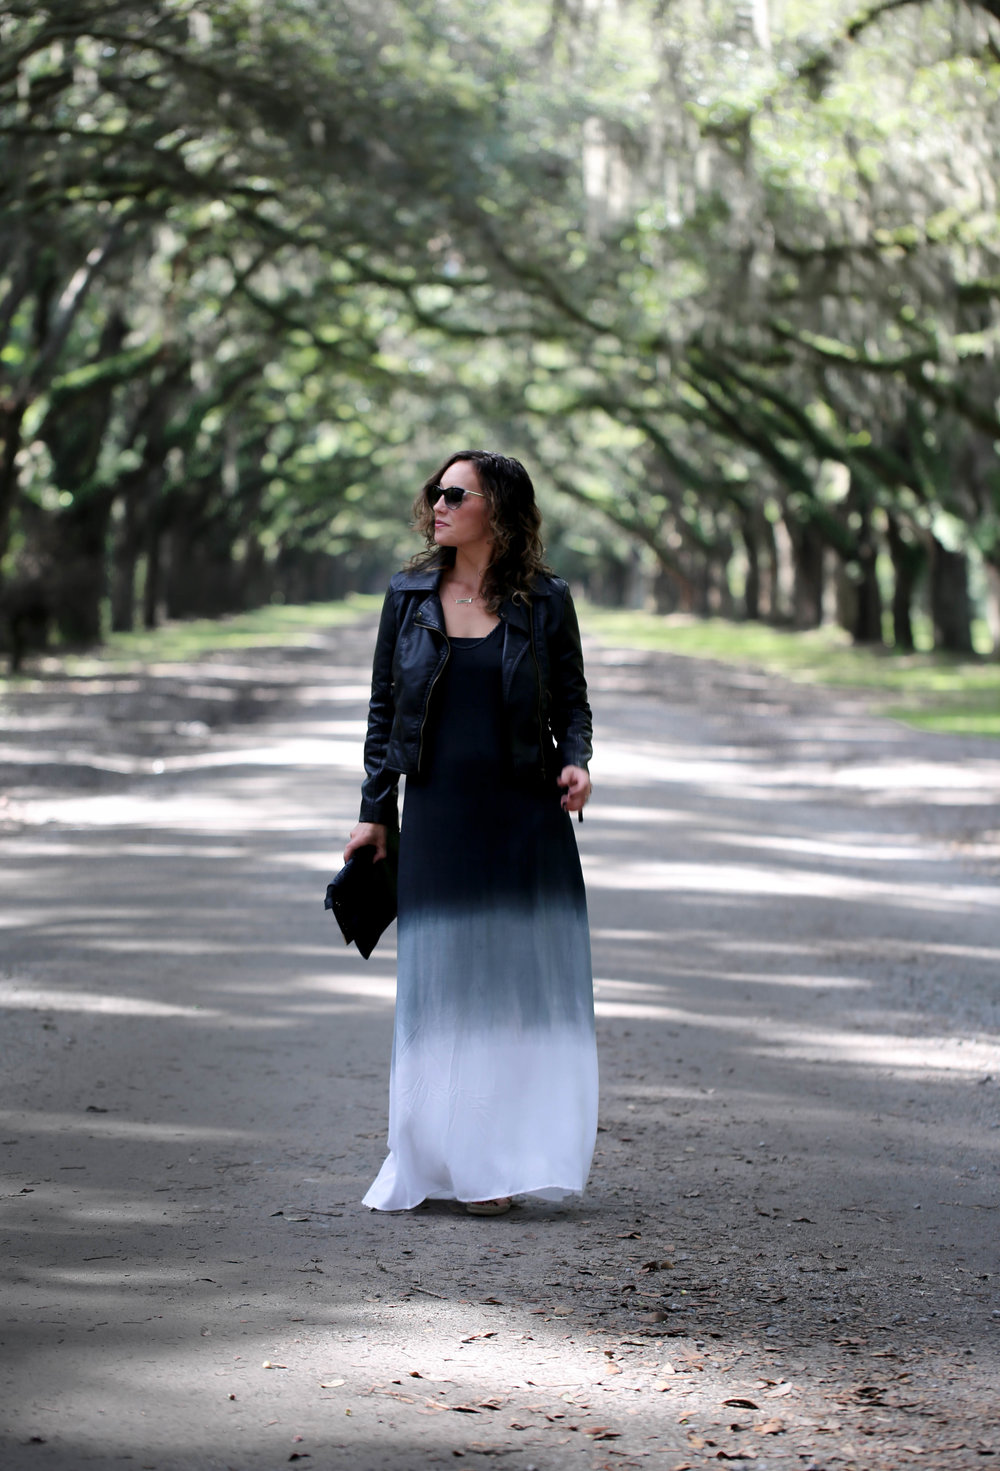 black, white, and gray maxi dress outfit with black leather jacket, how to make your wardrobe work, make the most out of a small closet, living large with a little wardrobe, tie dye maxi dress, maxi dress for women, leather jacket, versatile pieces, how to make your style last longer, getting creative with your clothes,